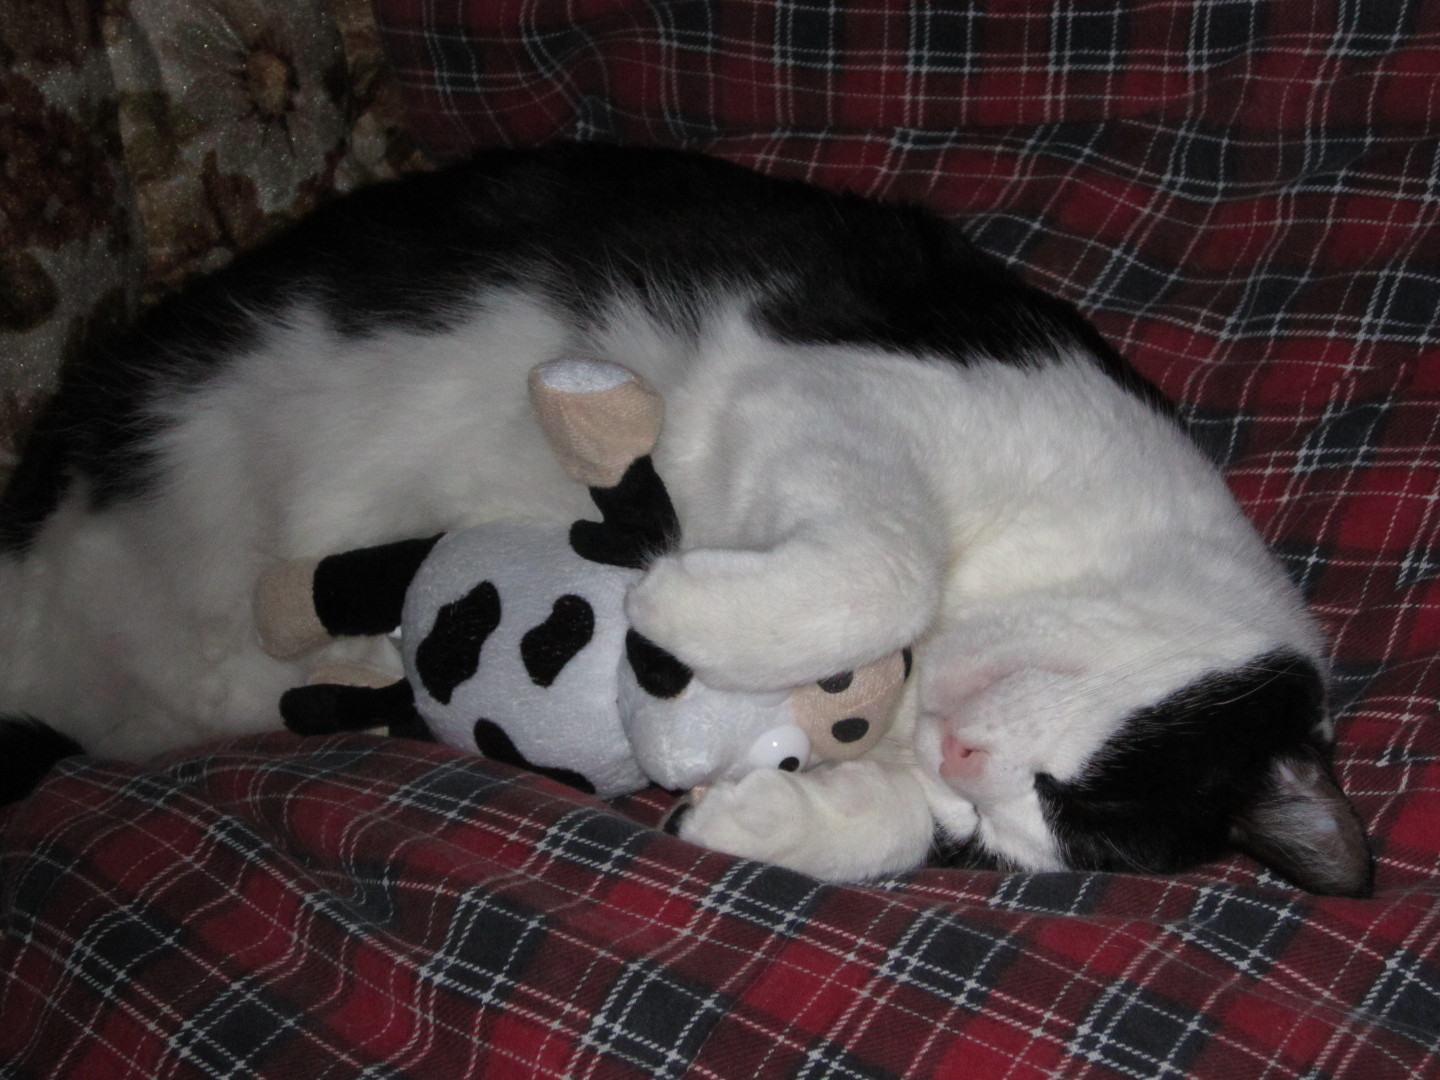 Tuxedo cat with stuffed toy cow